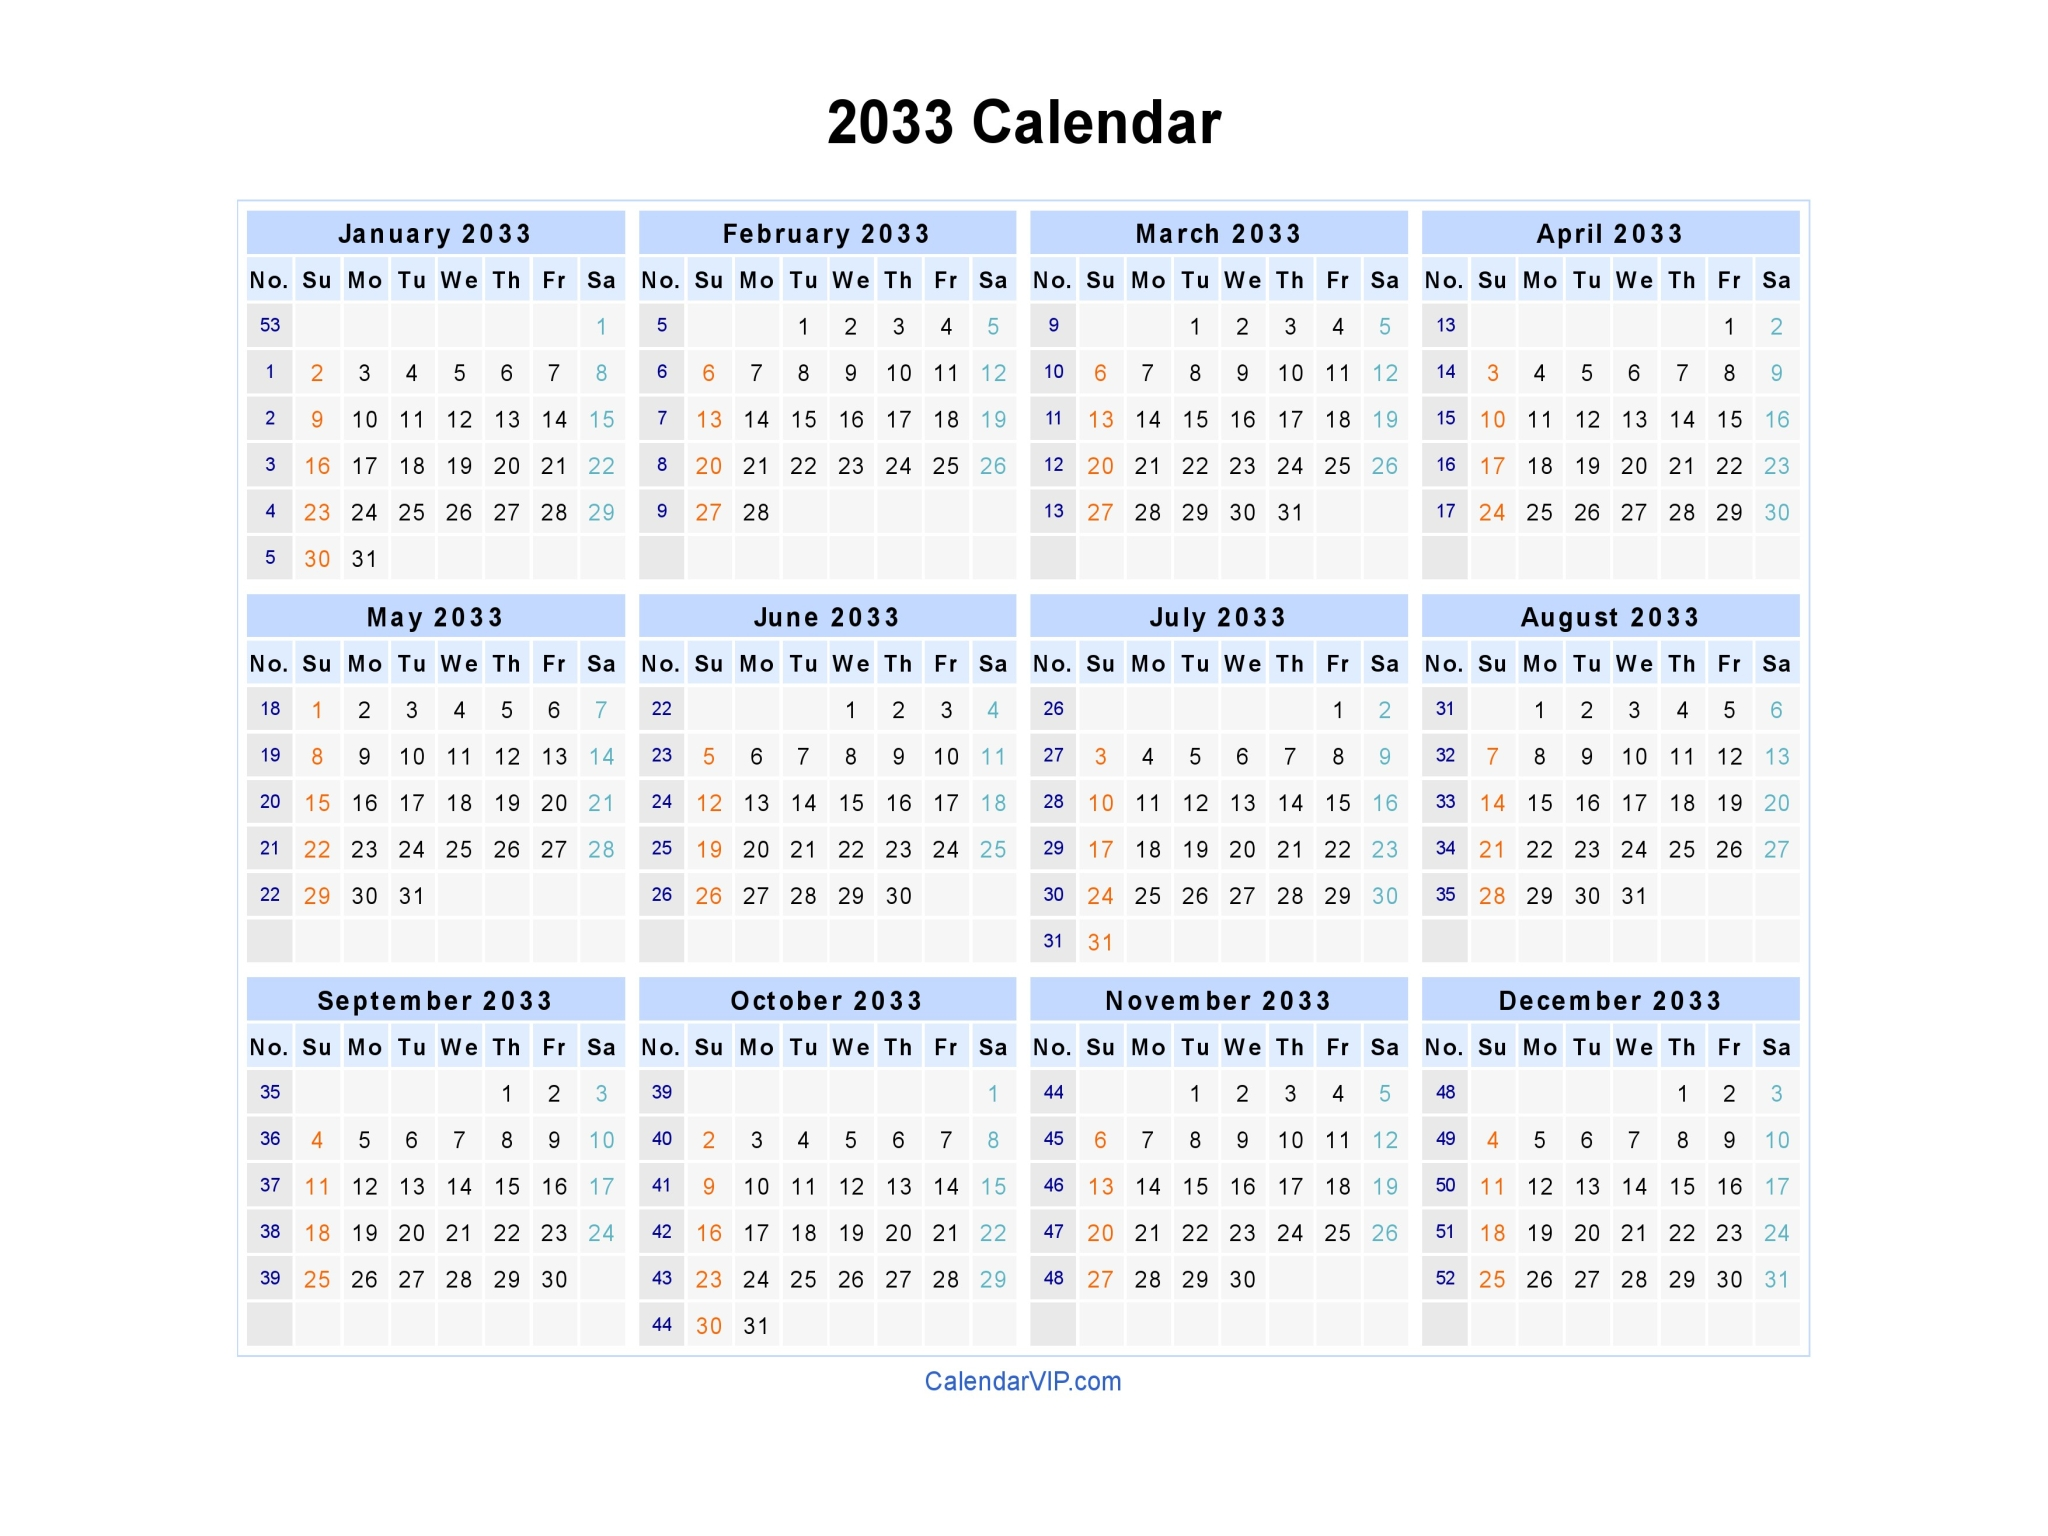 Calendar 2014 Template Monthly Free Printable Calendars Calendars In Pdf Format For 2033 Calendar Blank Printable Calendar Template In Pdf